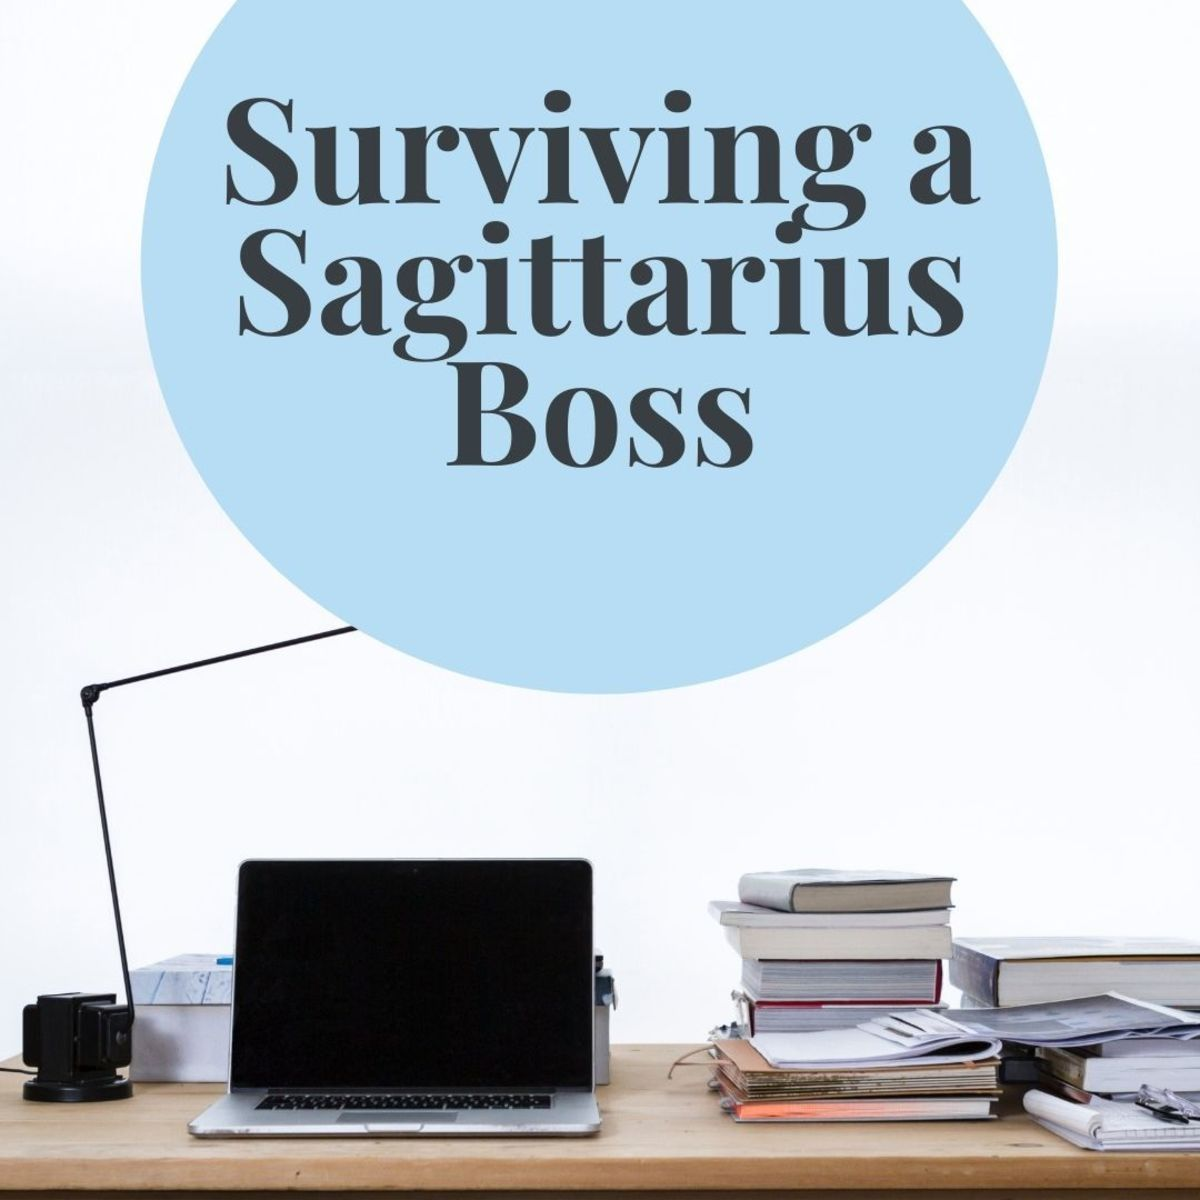 Working for a Sagittarius Boss: It's Going to Be a Bumpy Ride